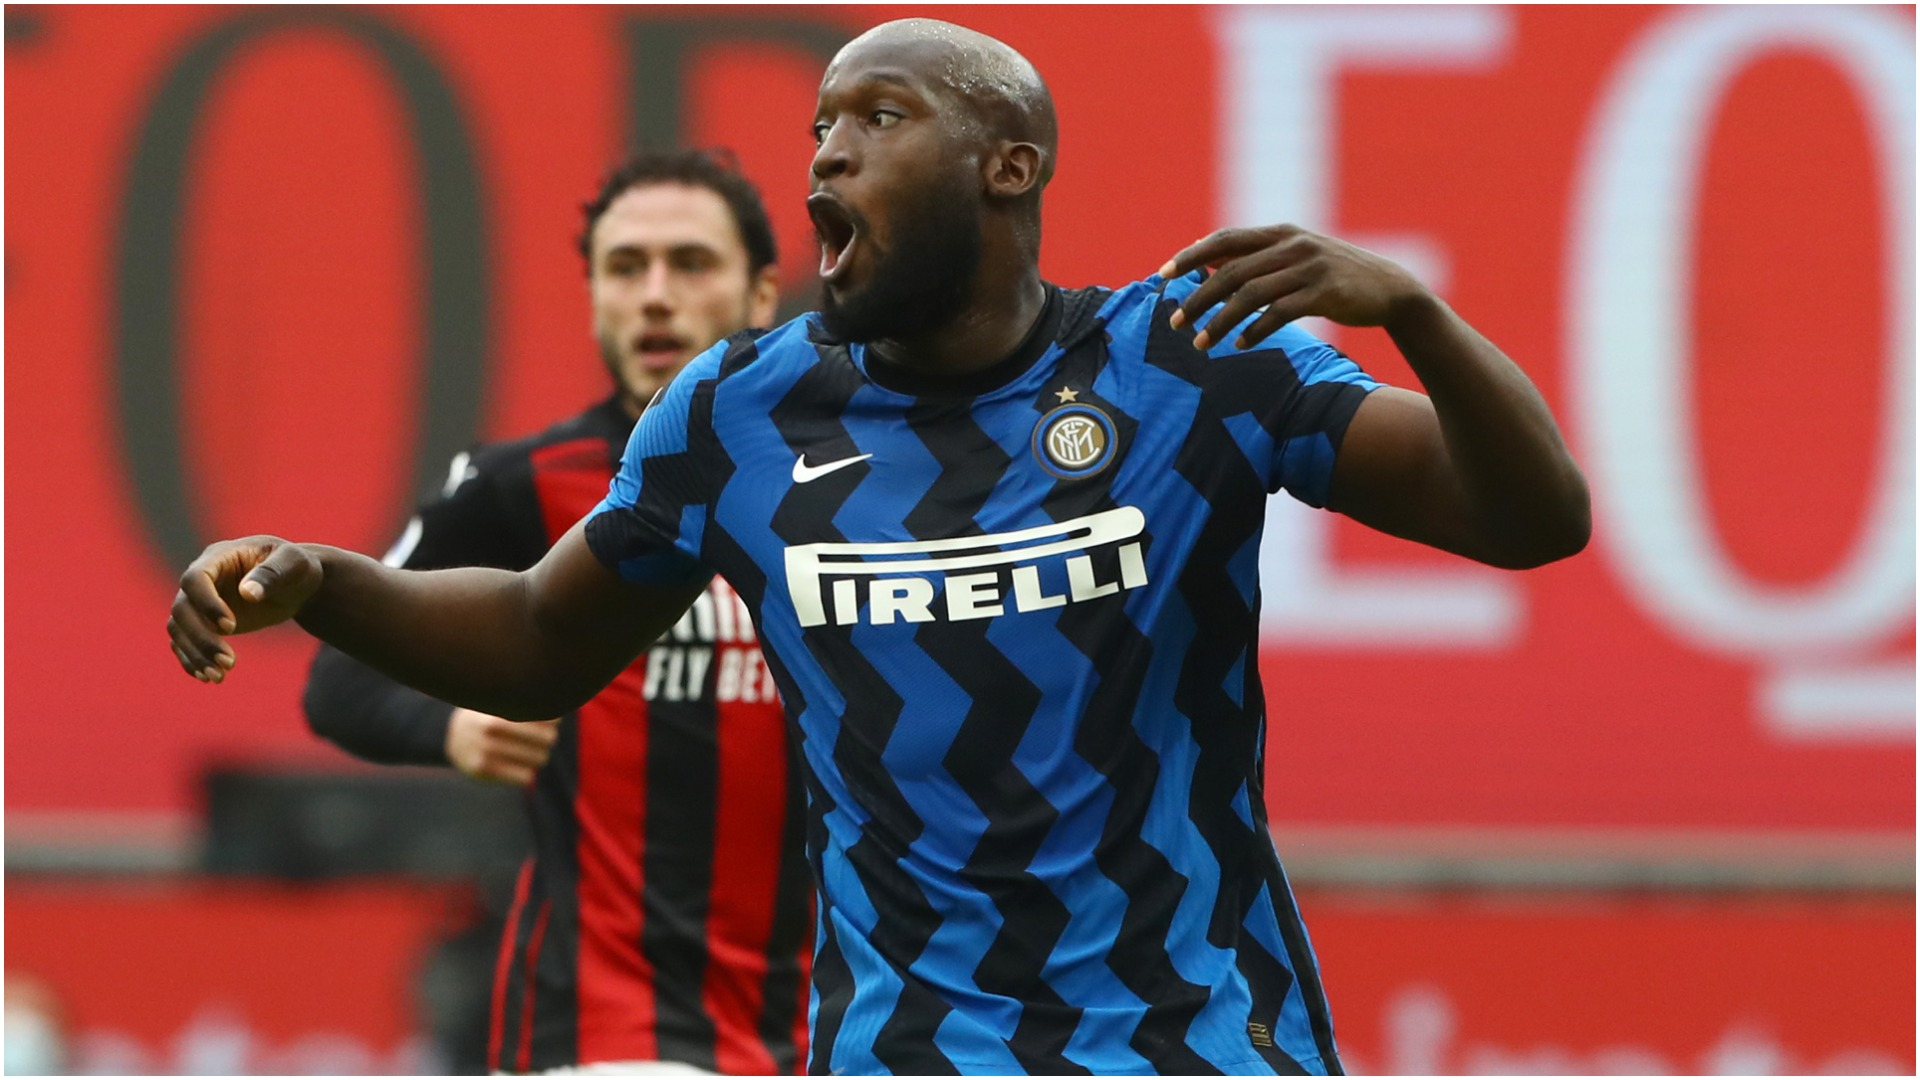 Inter striker Romelu Lukaku answered questions from followers on Twitter about life at Inter, Lautaro Martinez and his time in England.